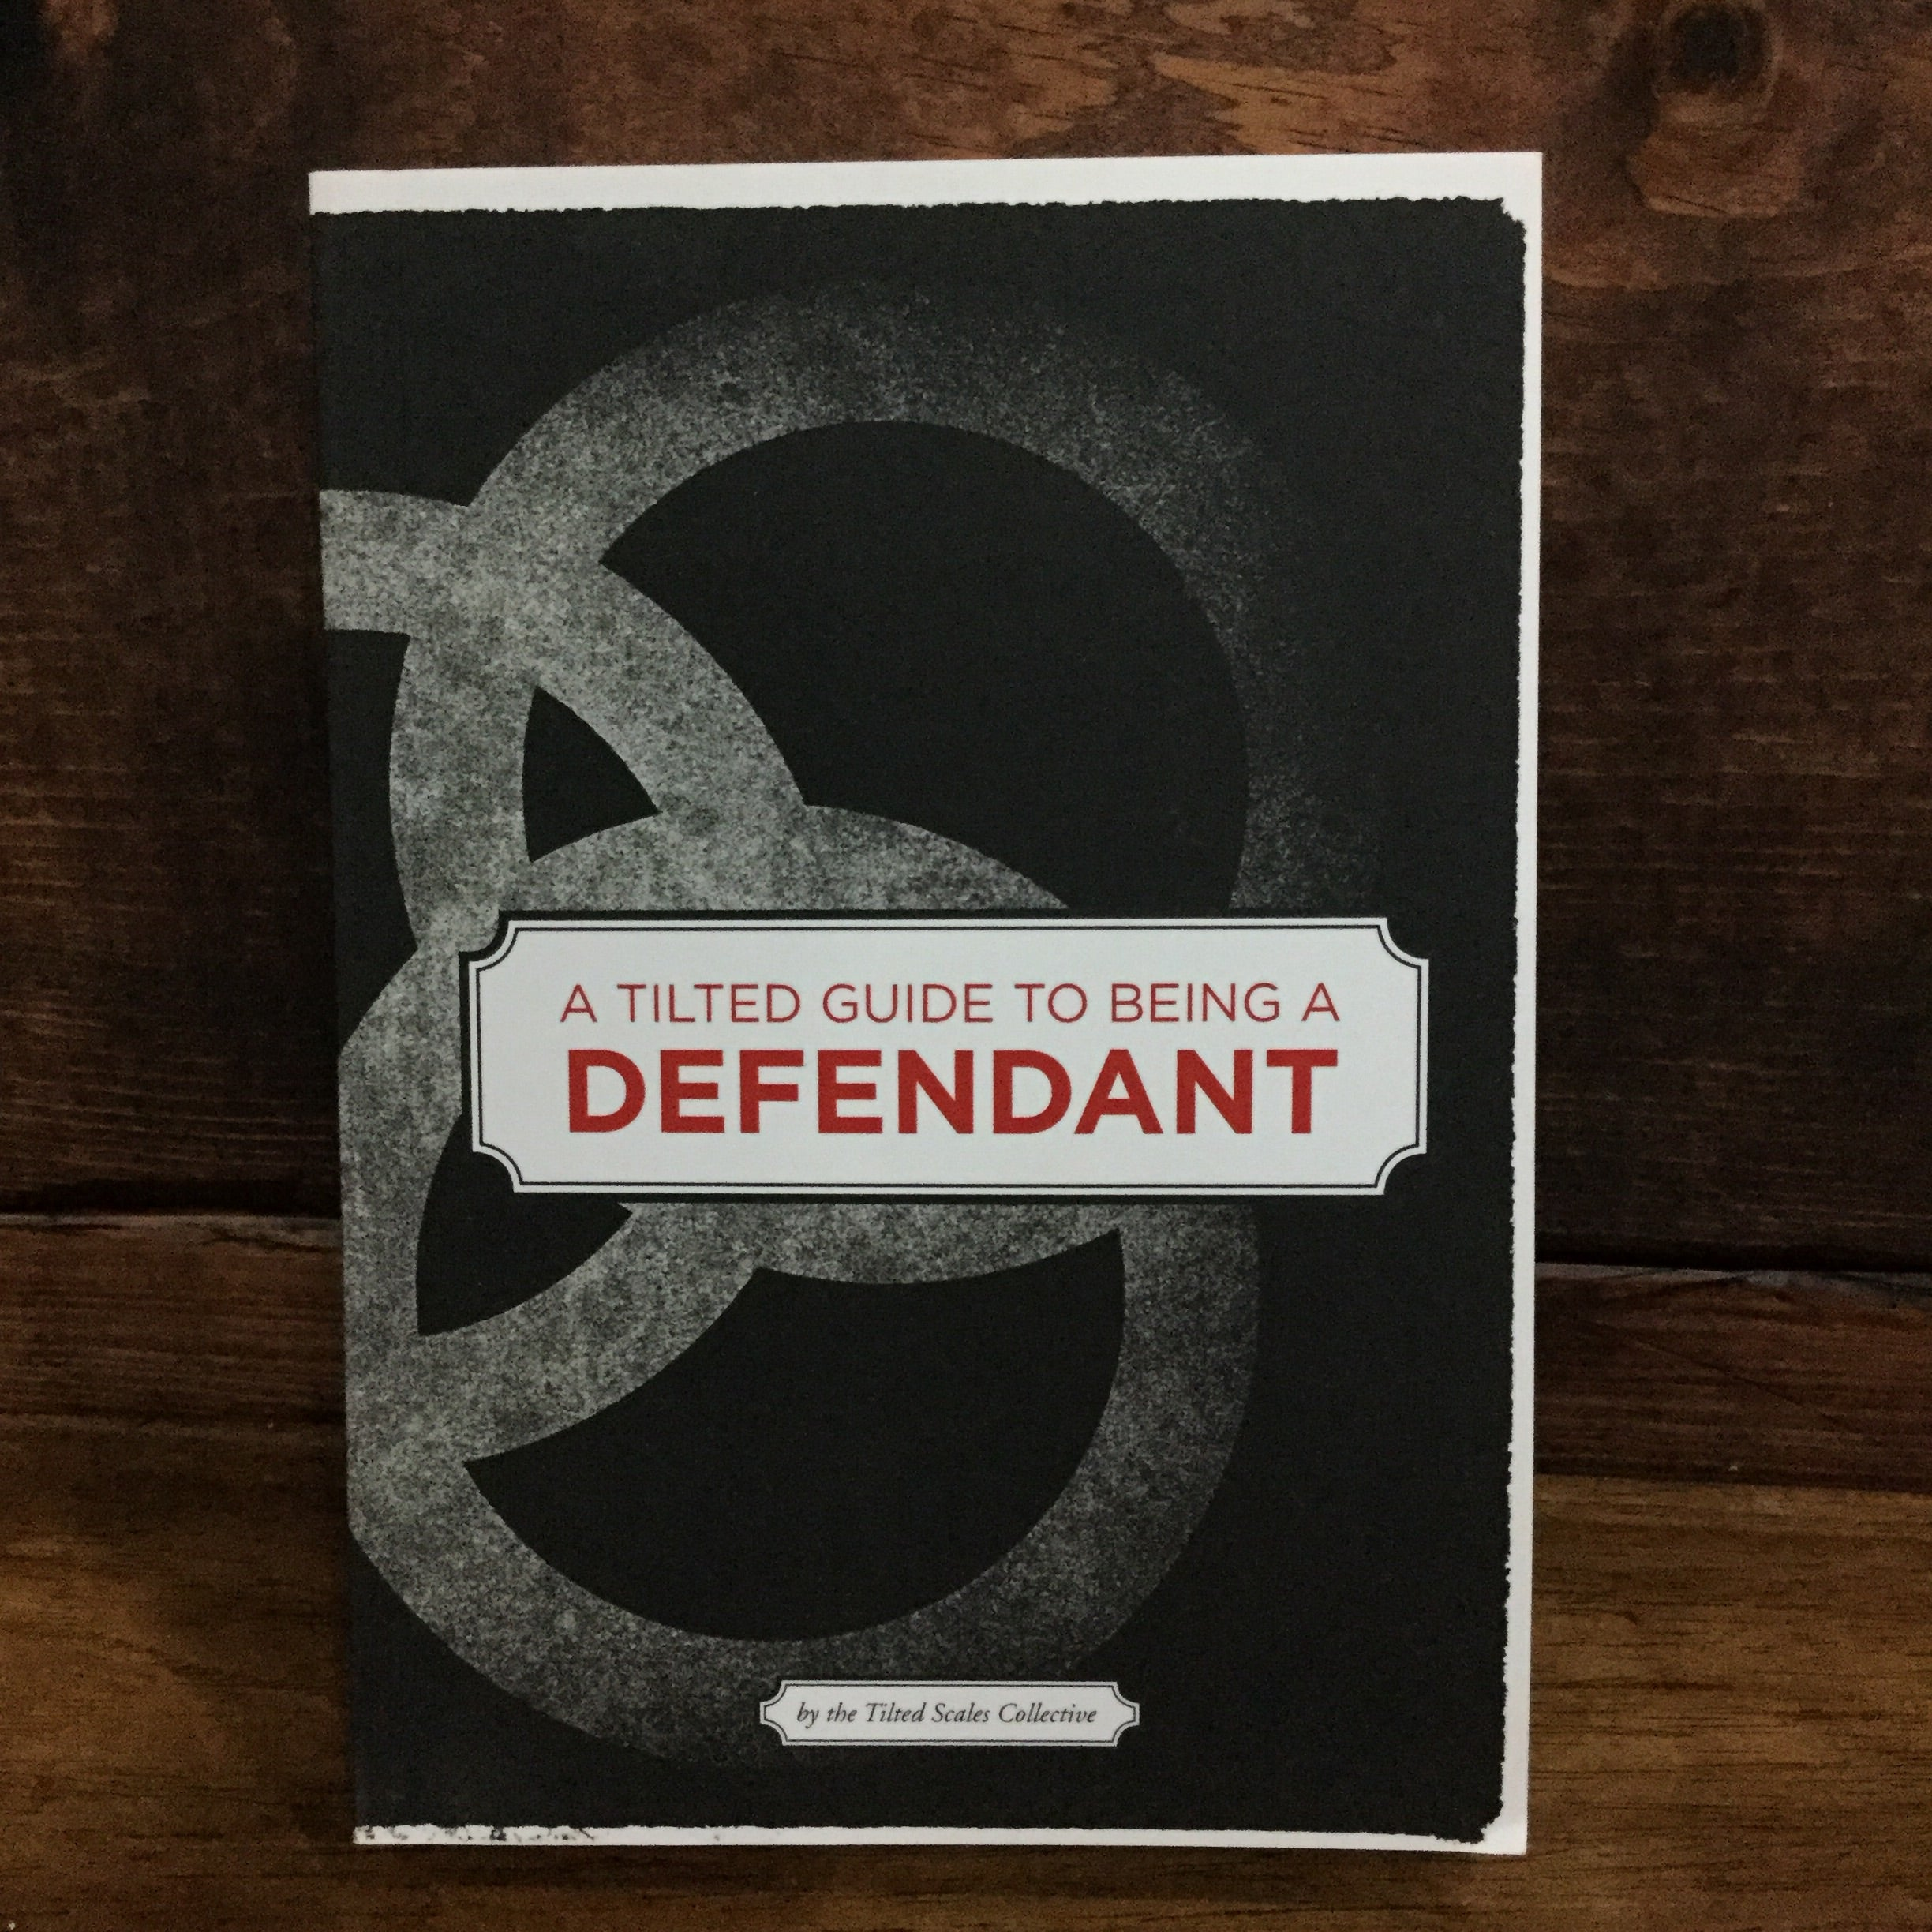 Tilted Guide to Being a Defendant